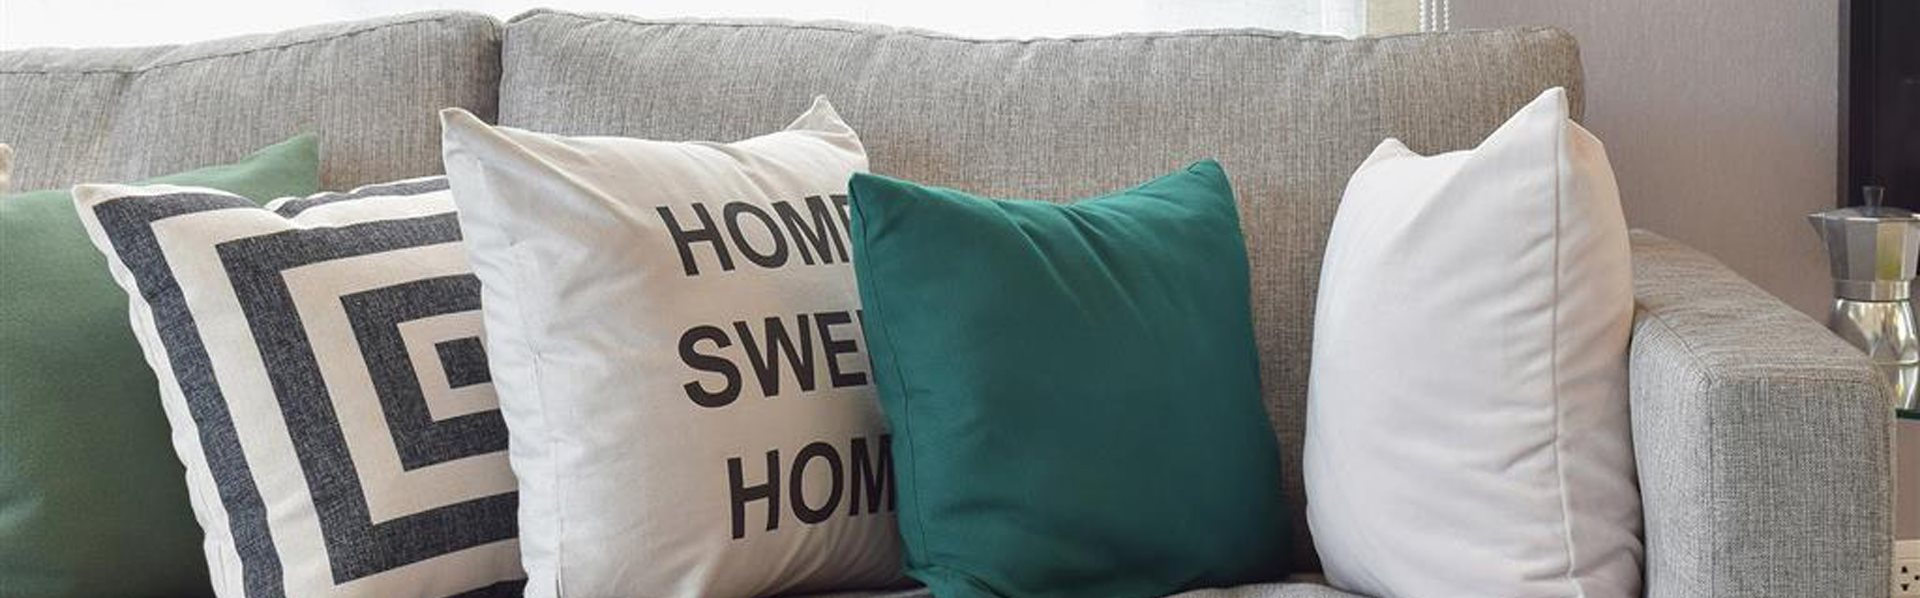 Stock Image Close up of Grey Couch with Grey Green and White Throw Pillows with Vase of White Flowers in the Foreground